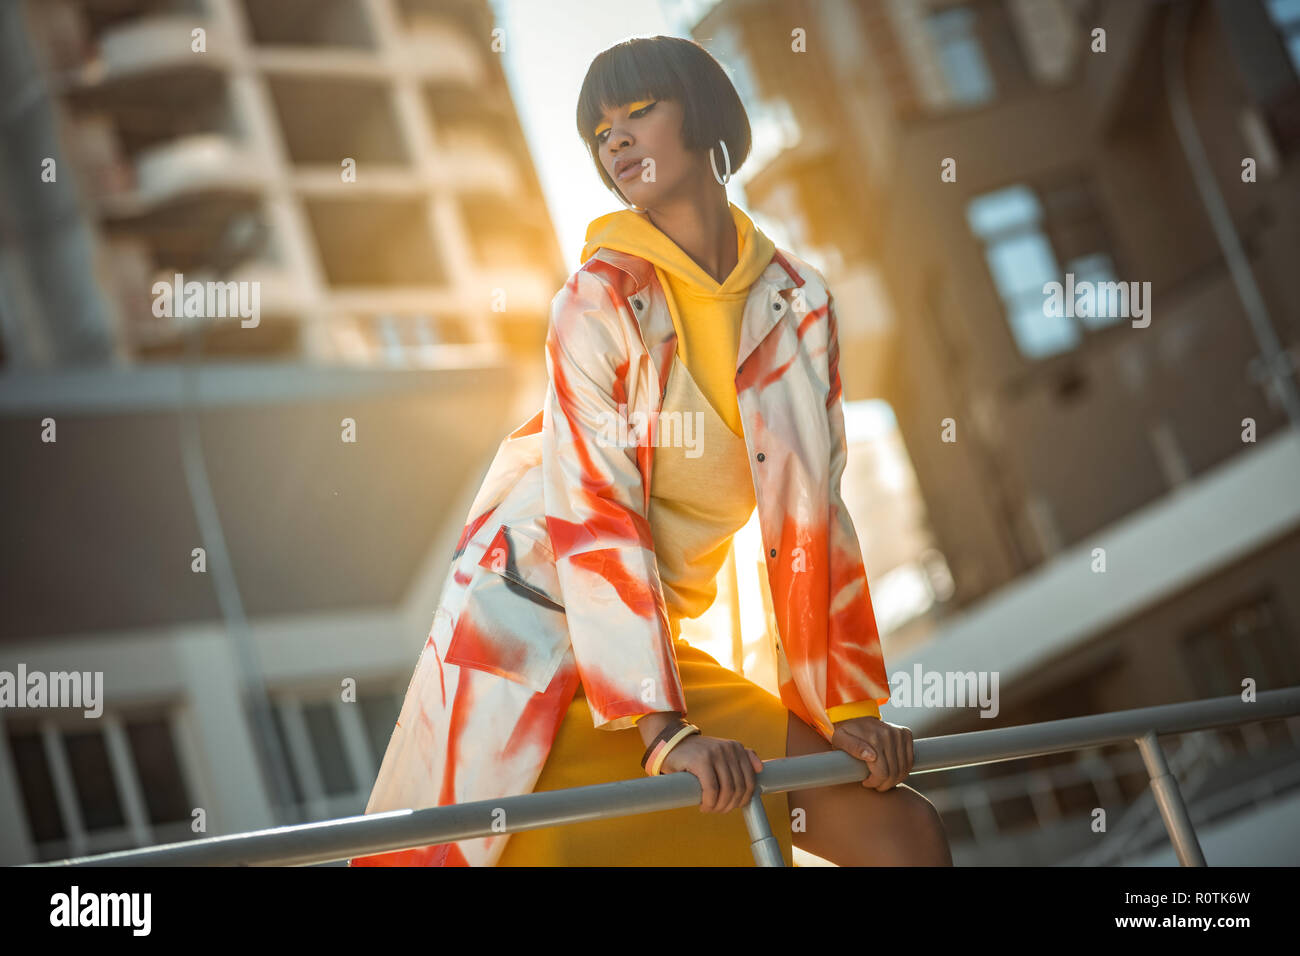 Vicious well-dressed model stooping over handrail exhibiting outfit - Stock Image